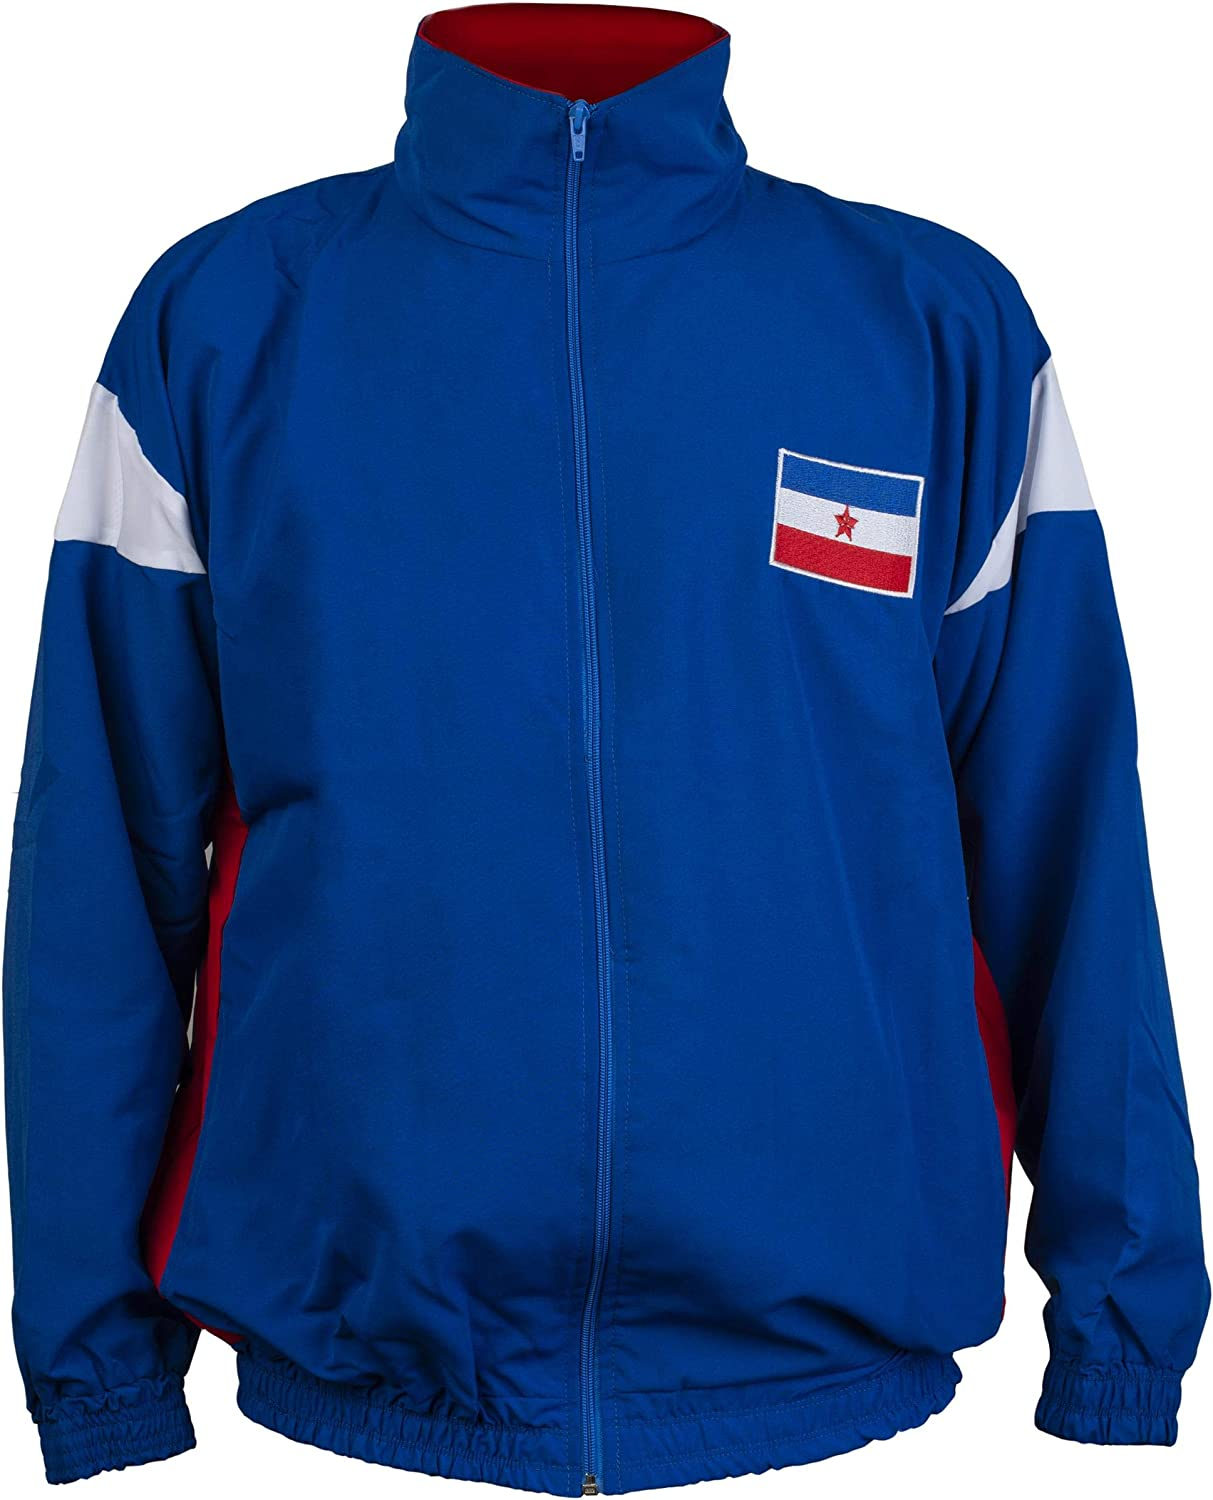 Yugoslavia 1980's Retro Vintage Commonist Era National Football Soccer Jacket Tracksuit Jumper